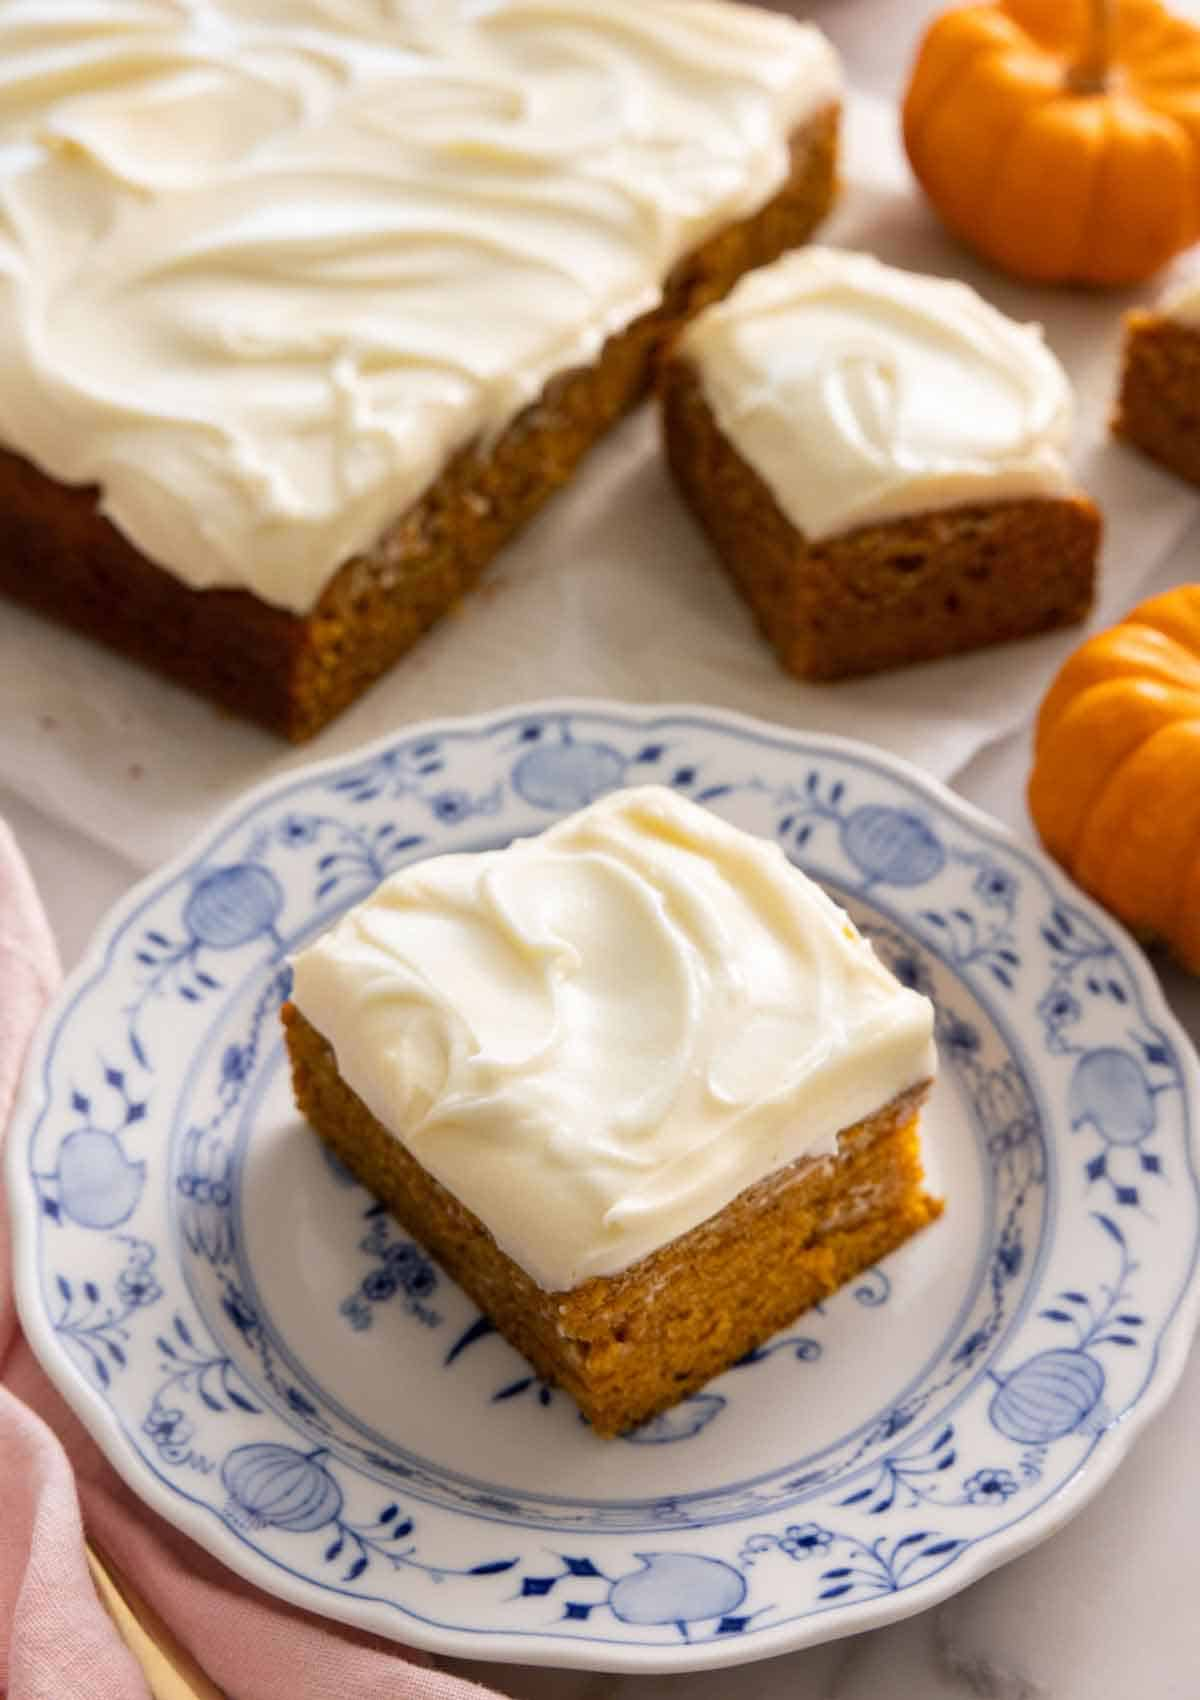 A square slice of pumpkin cake on a plate with the rest of the cake in the background.